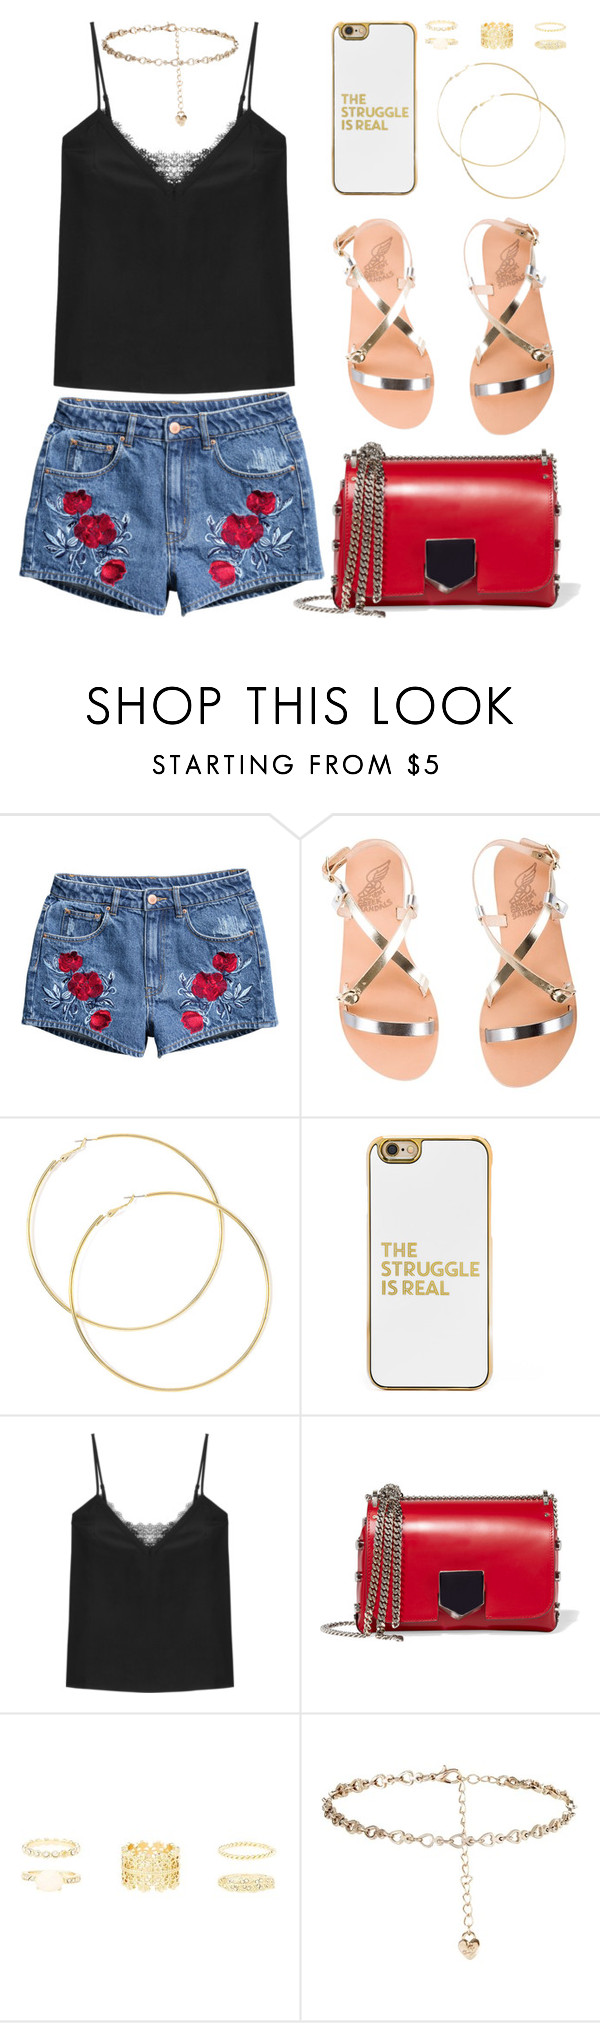 """""""BA71: 11.11"""" by bugatti-veyron ❤ liked on Polyvore featuring H&M, Ancient Greek Sandals, BaubleBar, The Kooples, Jimmy Choo, Charlotte Russe and Lipsy"""